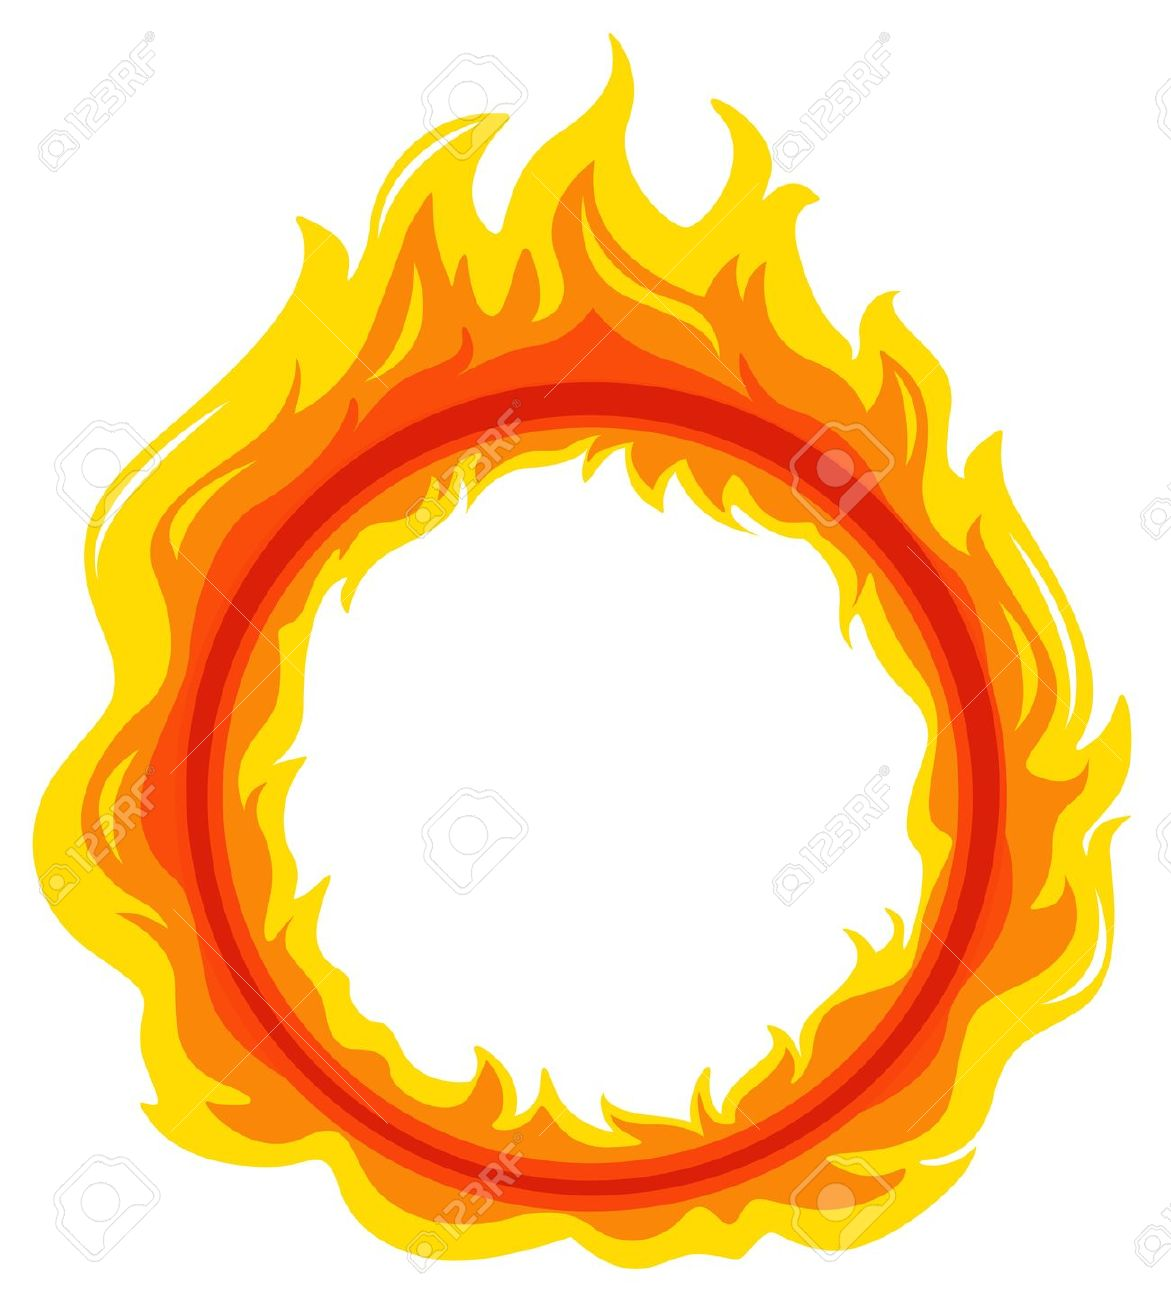 Illustration Of A Fireball On A White Background Royalty Free.